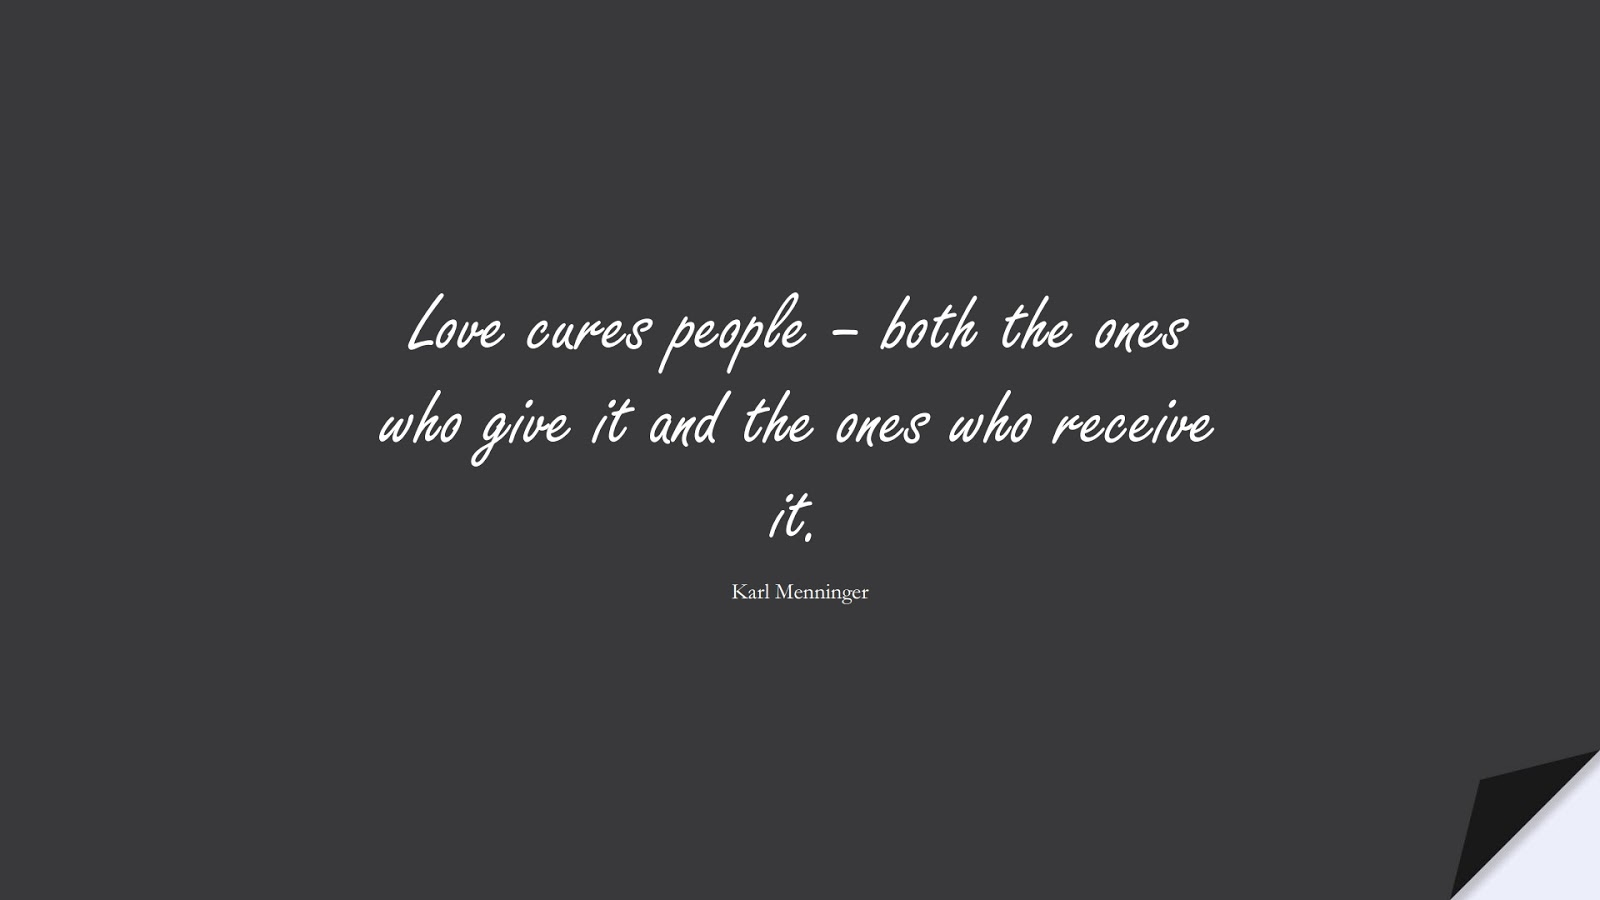 Love cures people – both the ones who give it and the ones who receive it. (Karl Menninger);  #LoveQuotes